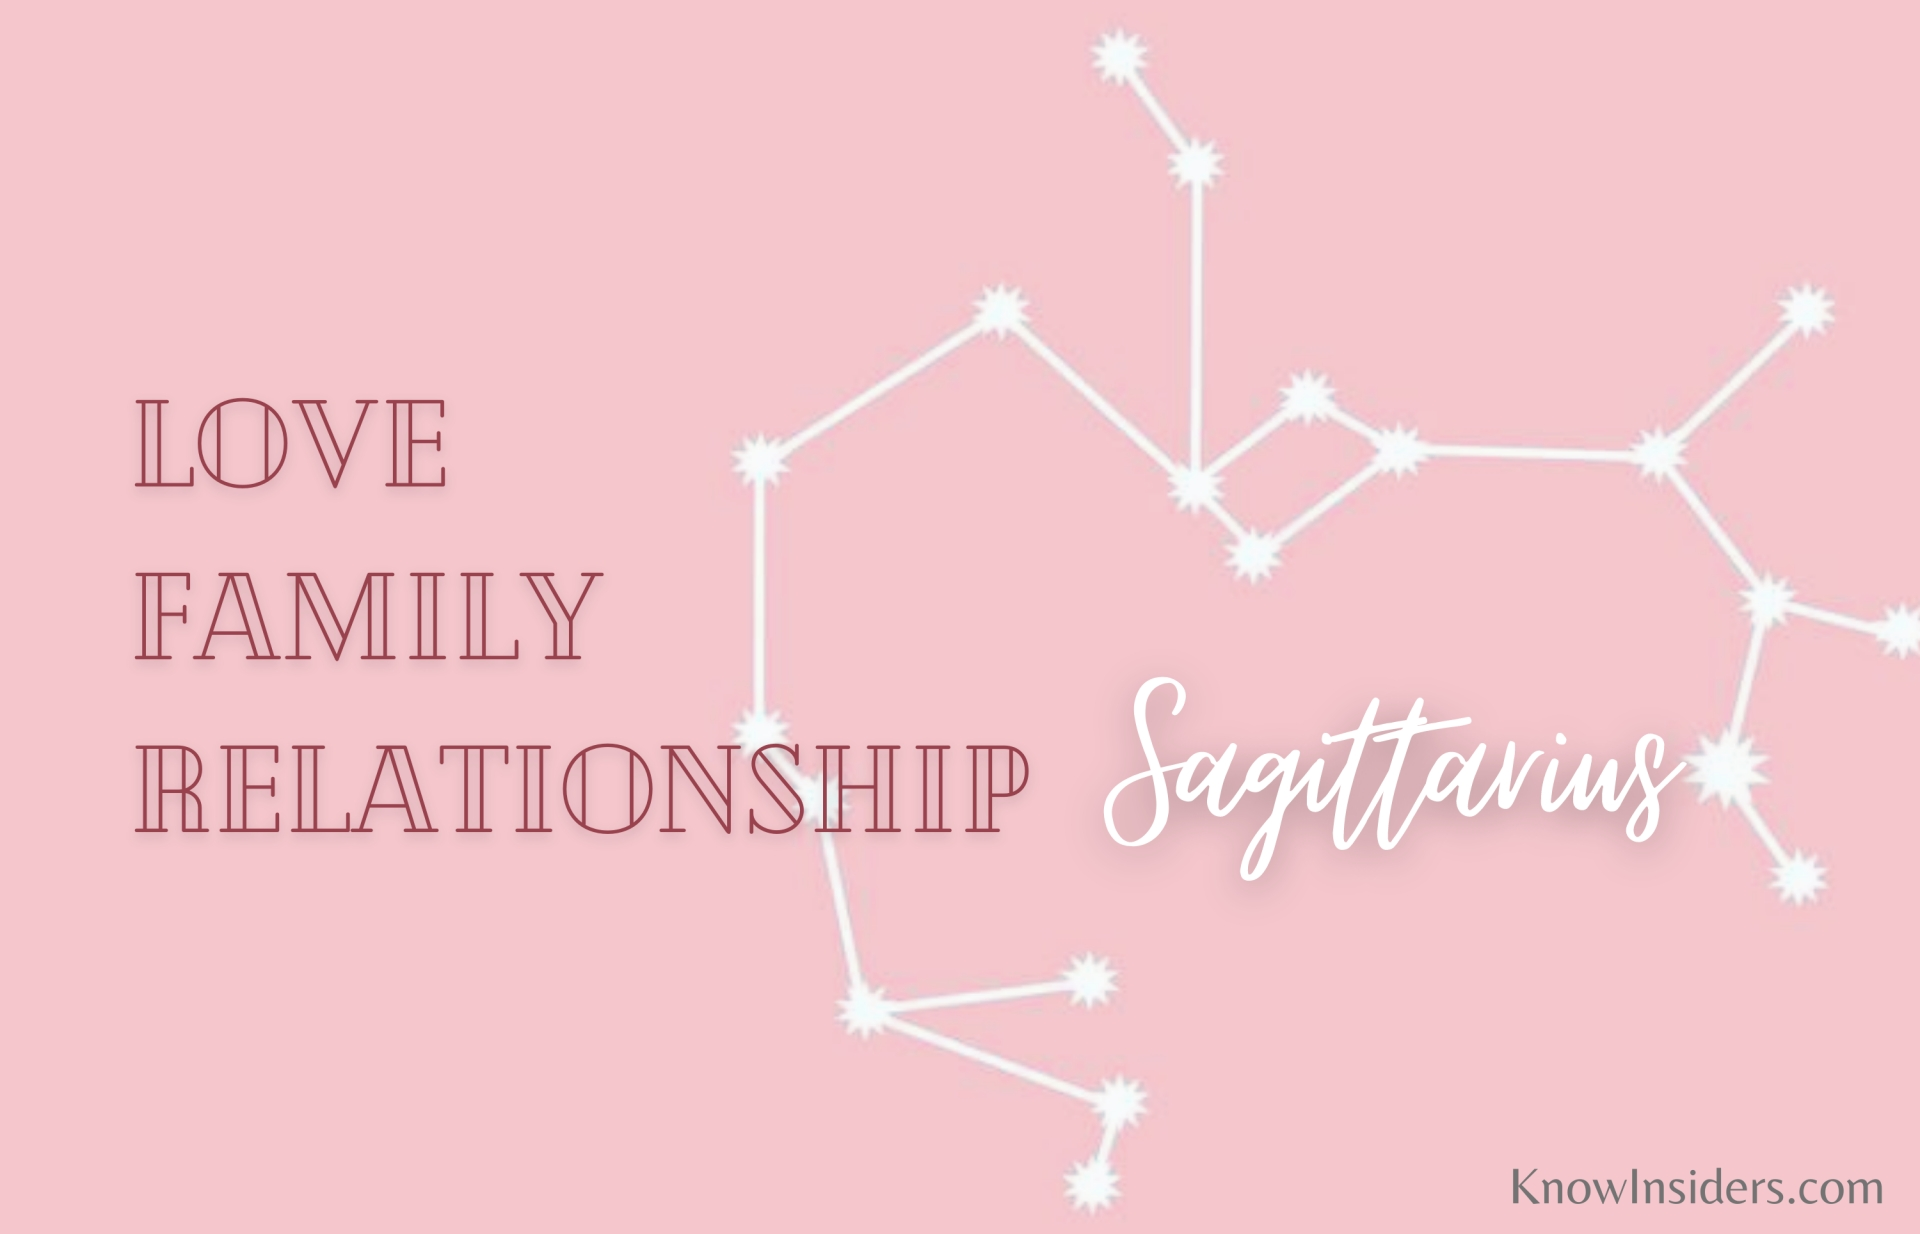 SAGITTARIUS Horoscope: Astrological Prediction for Love, Relationship and Family